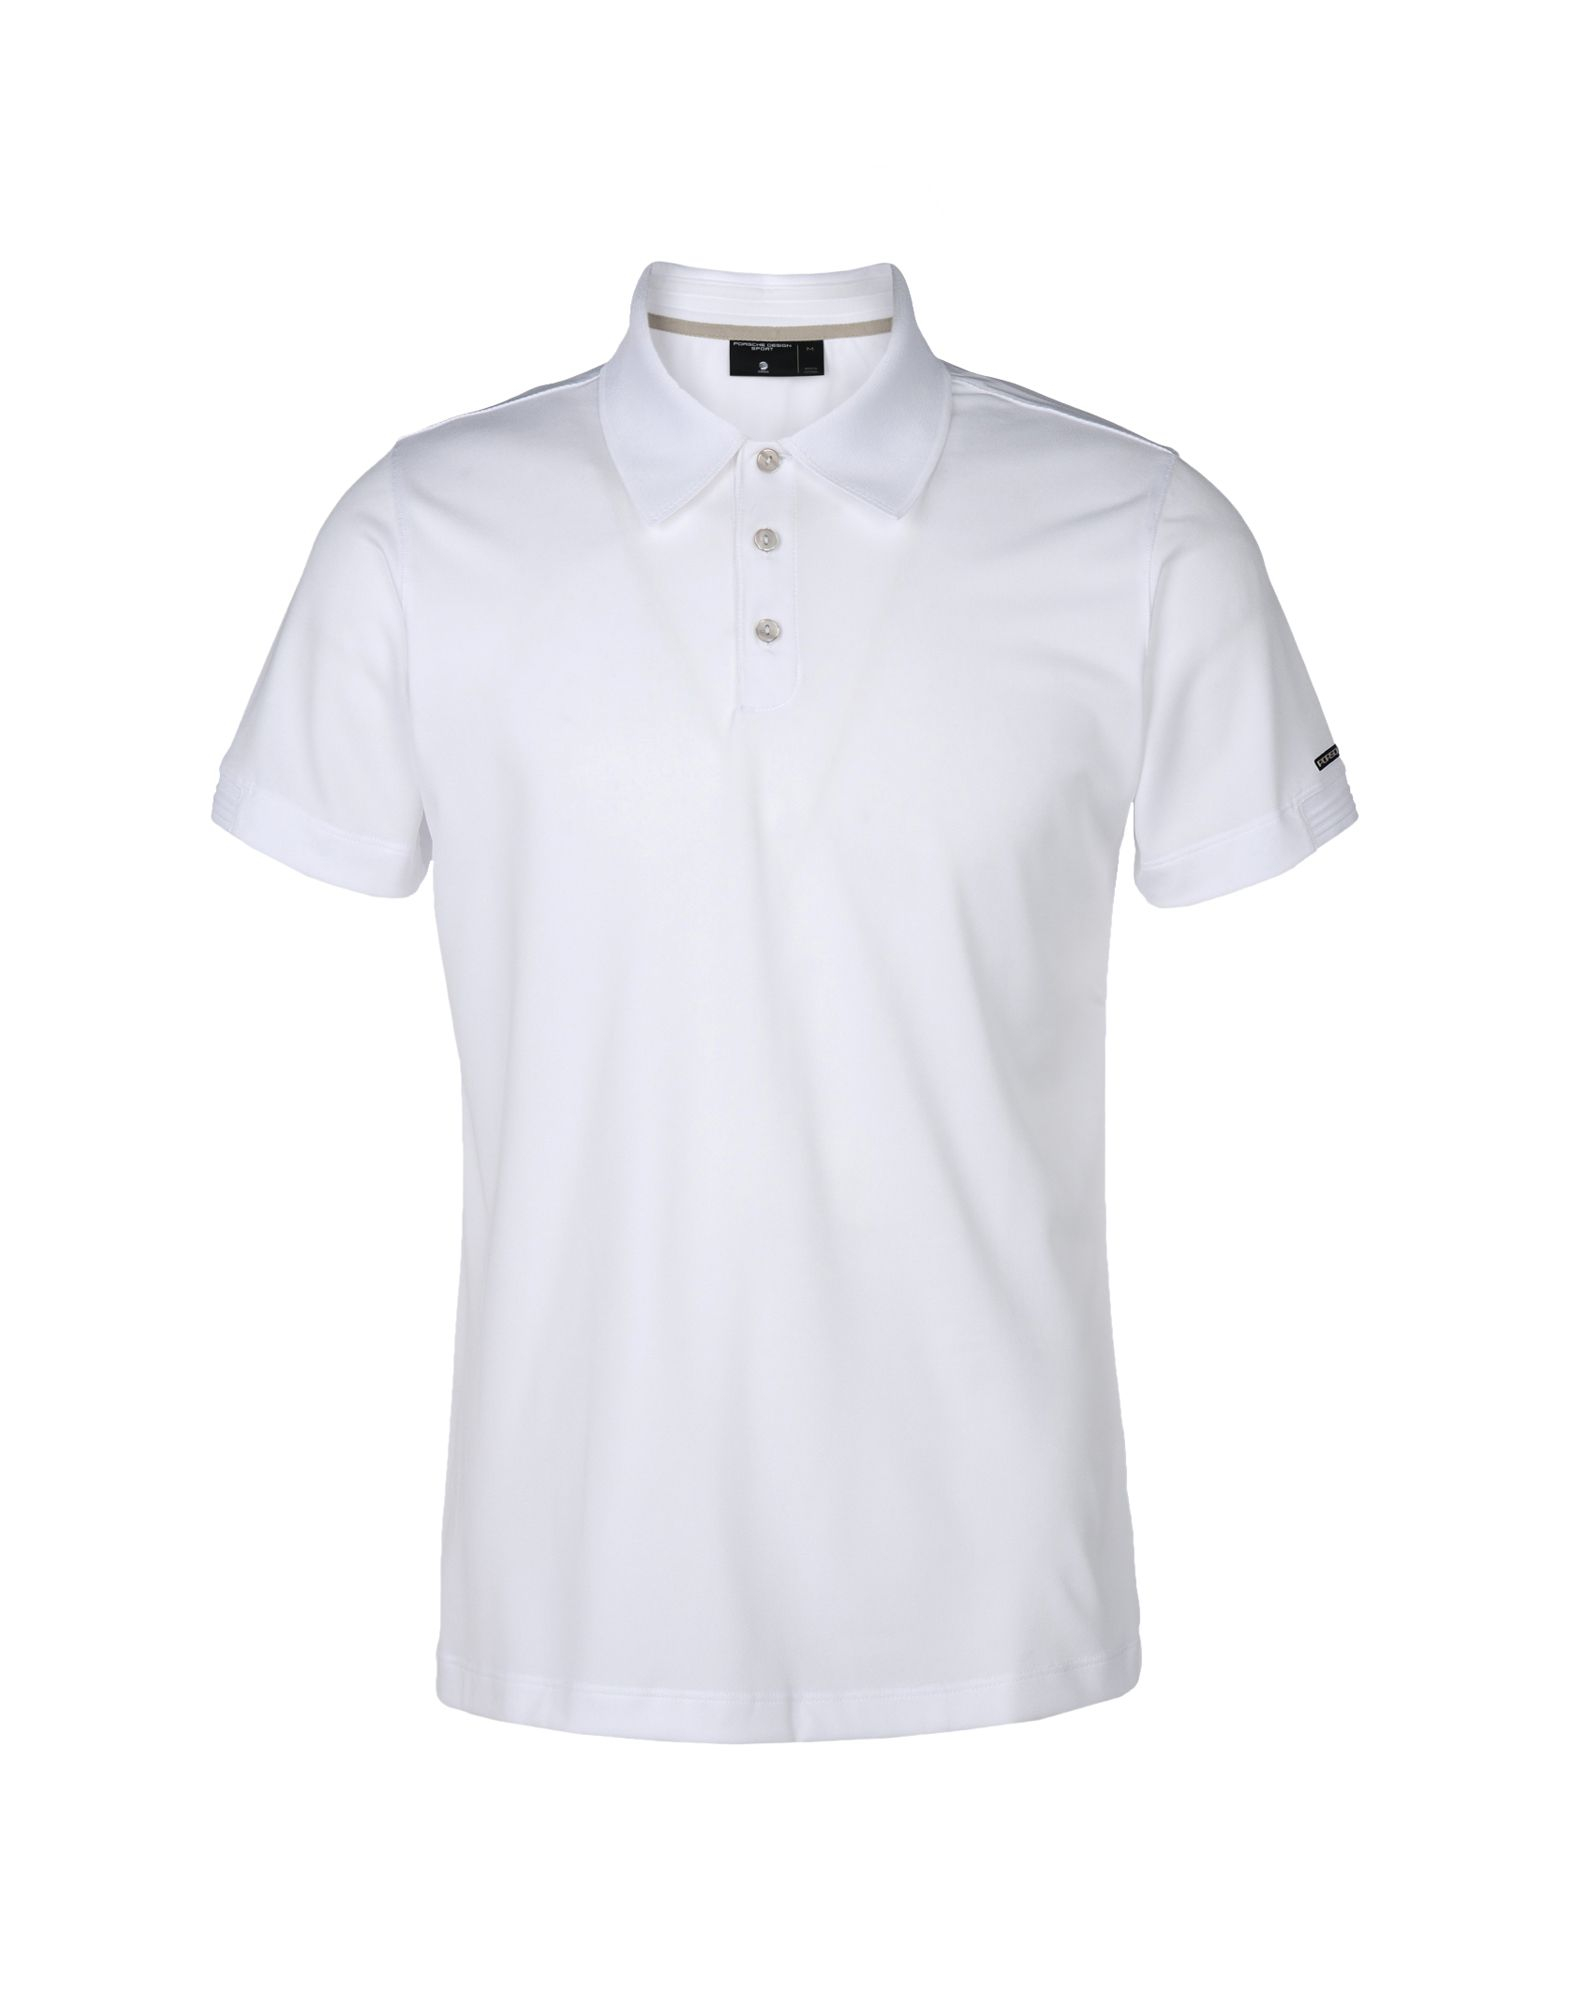 Porsche design sport by adidas polo shirt in white for men Man in polo shirt